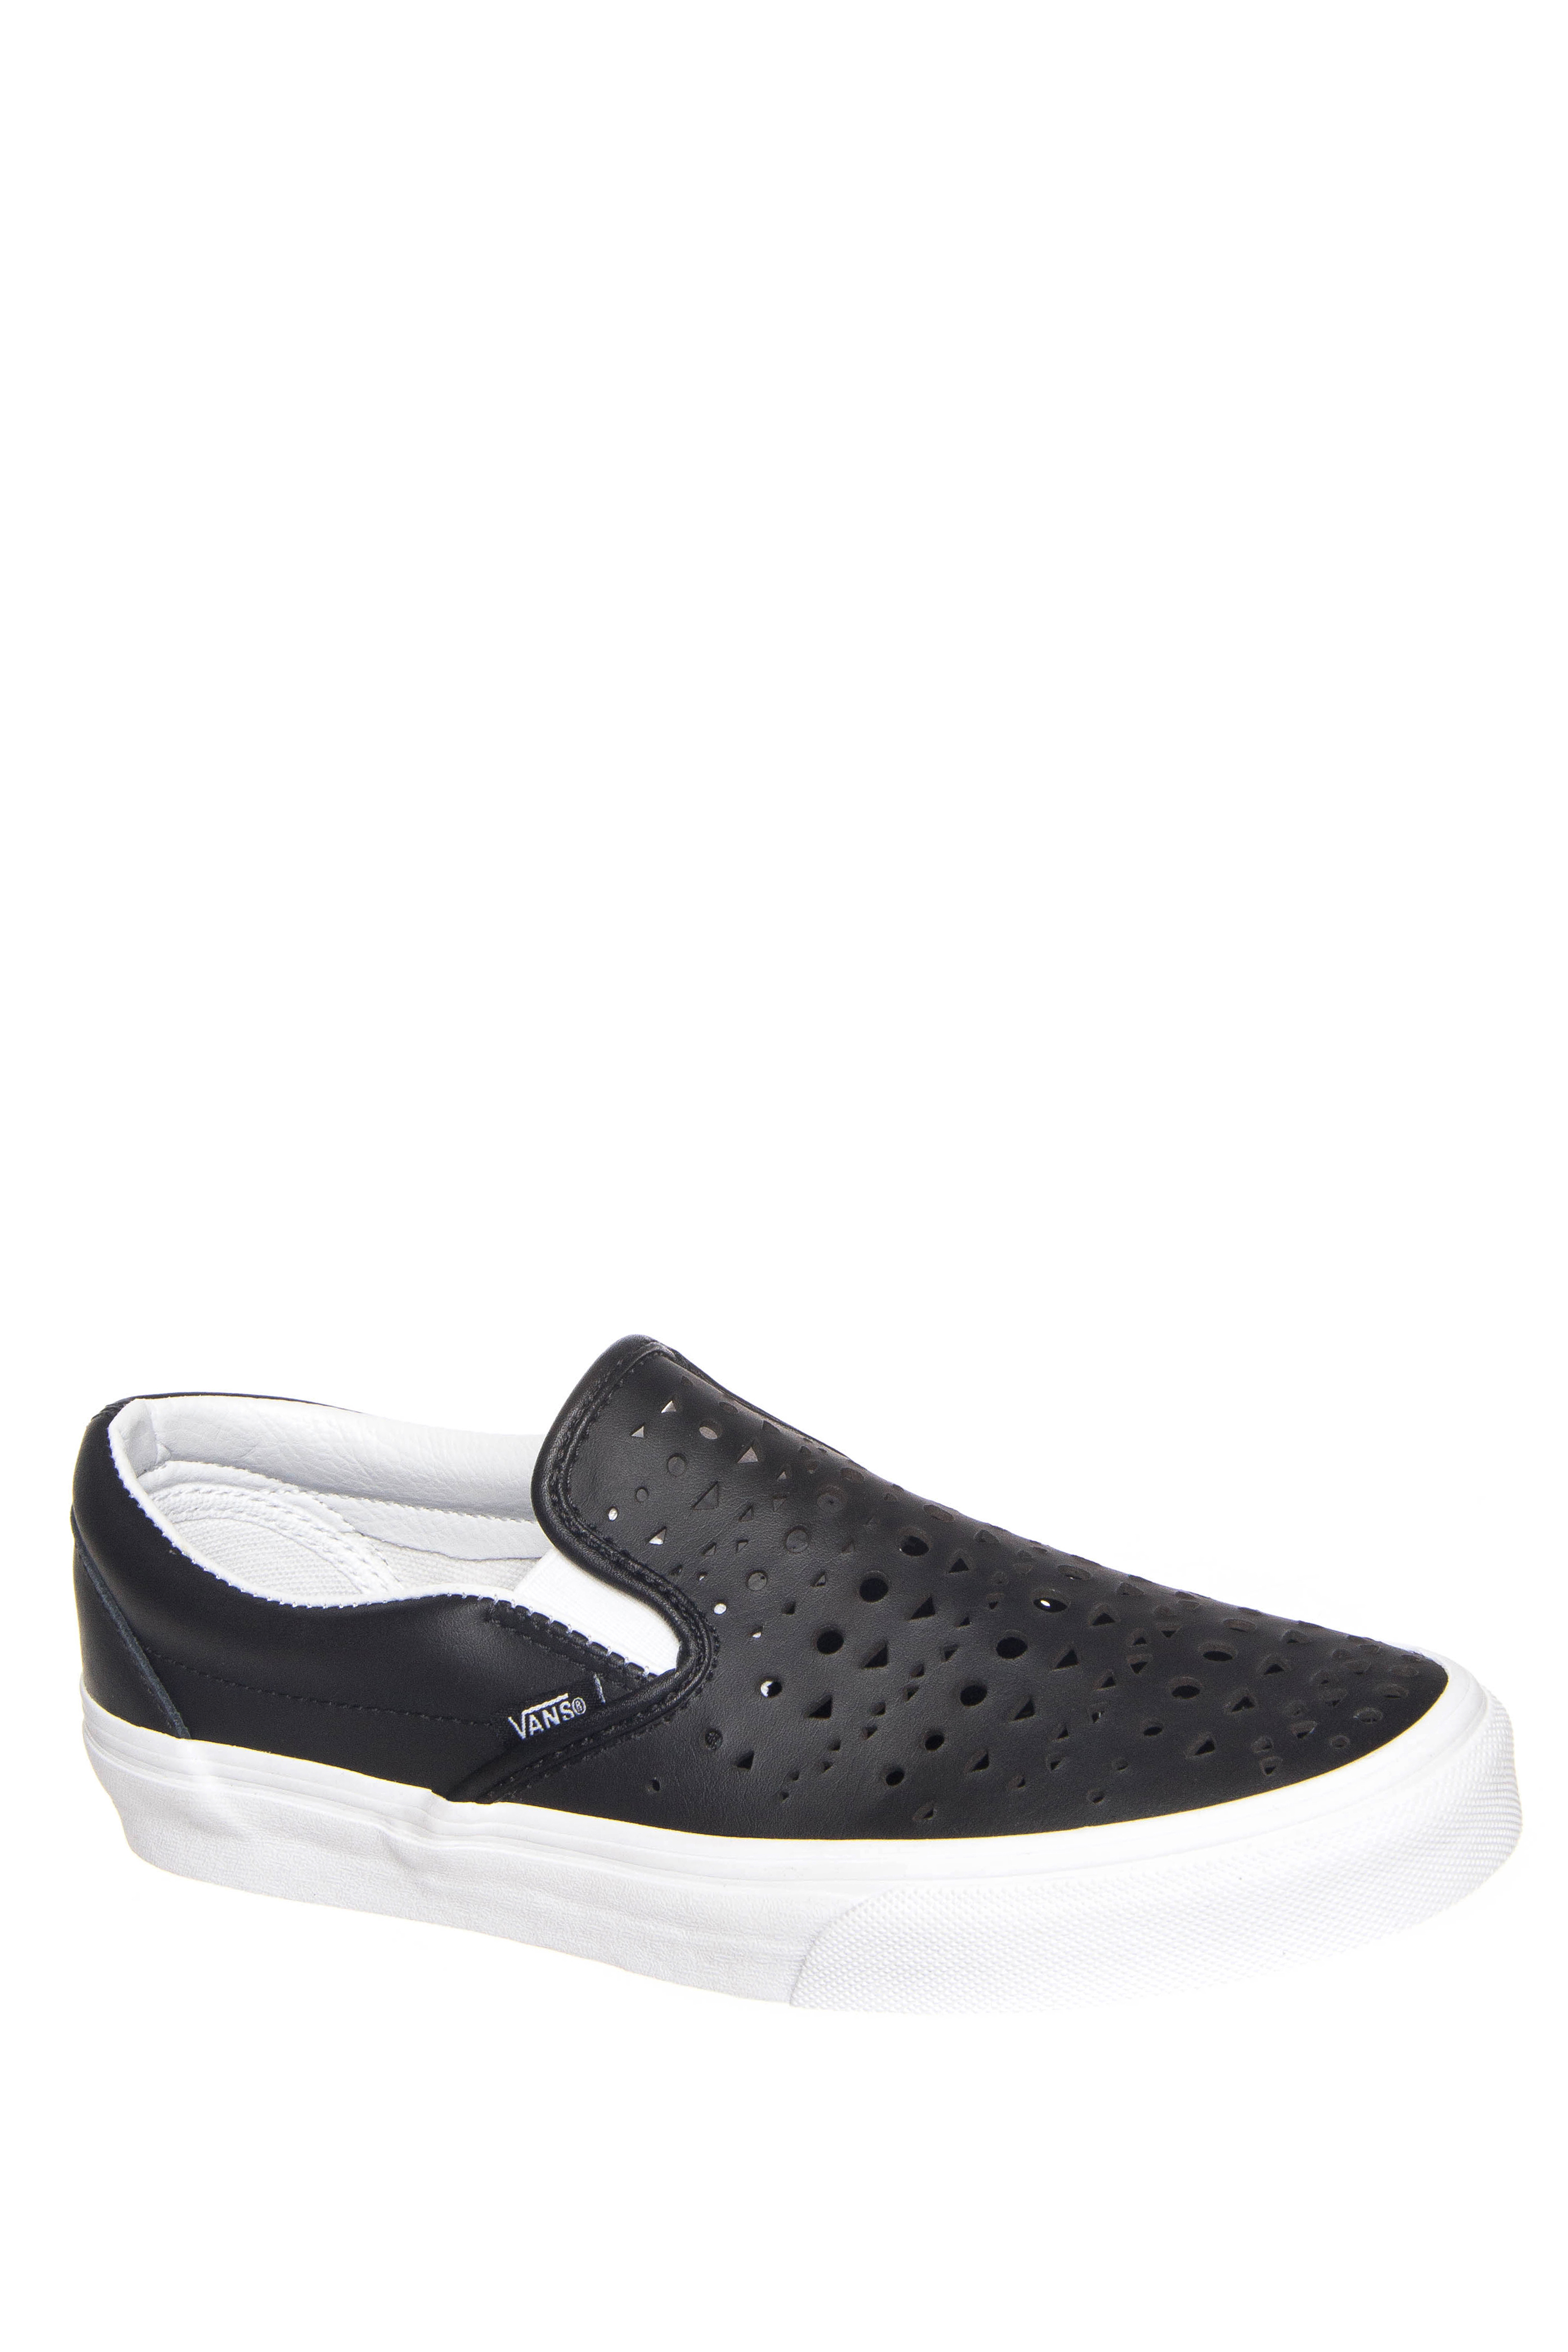 Vans Classic Cut Out Geo Slip-On Sneakers - Black / Blanc